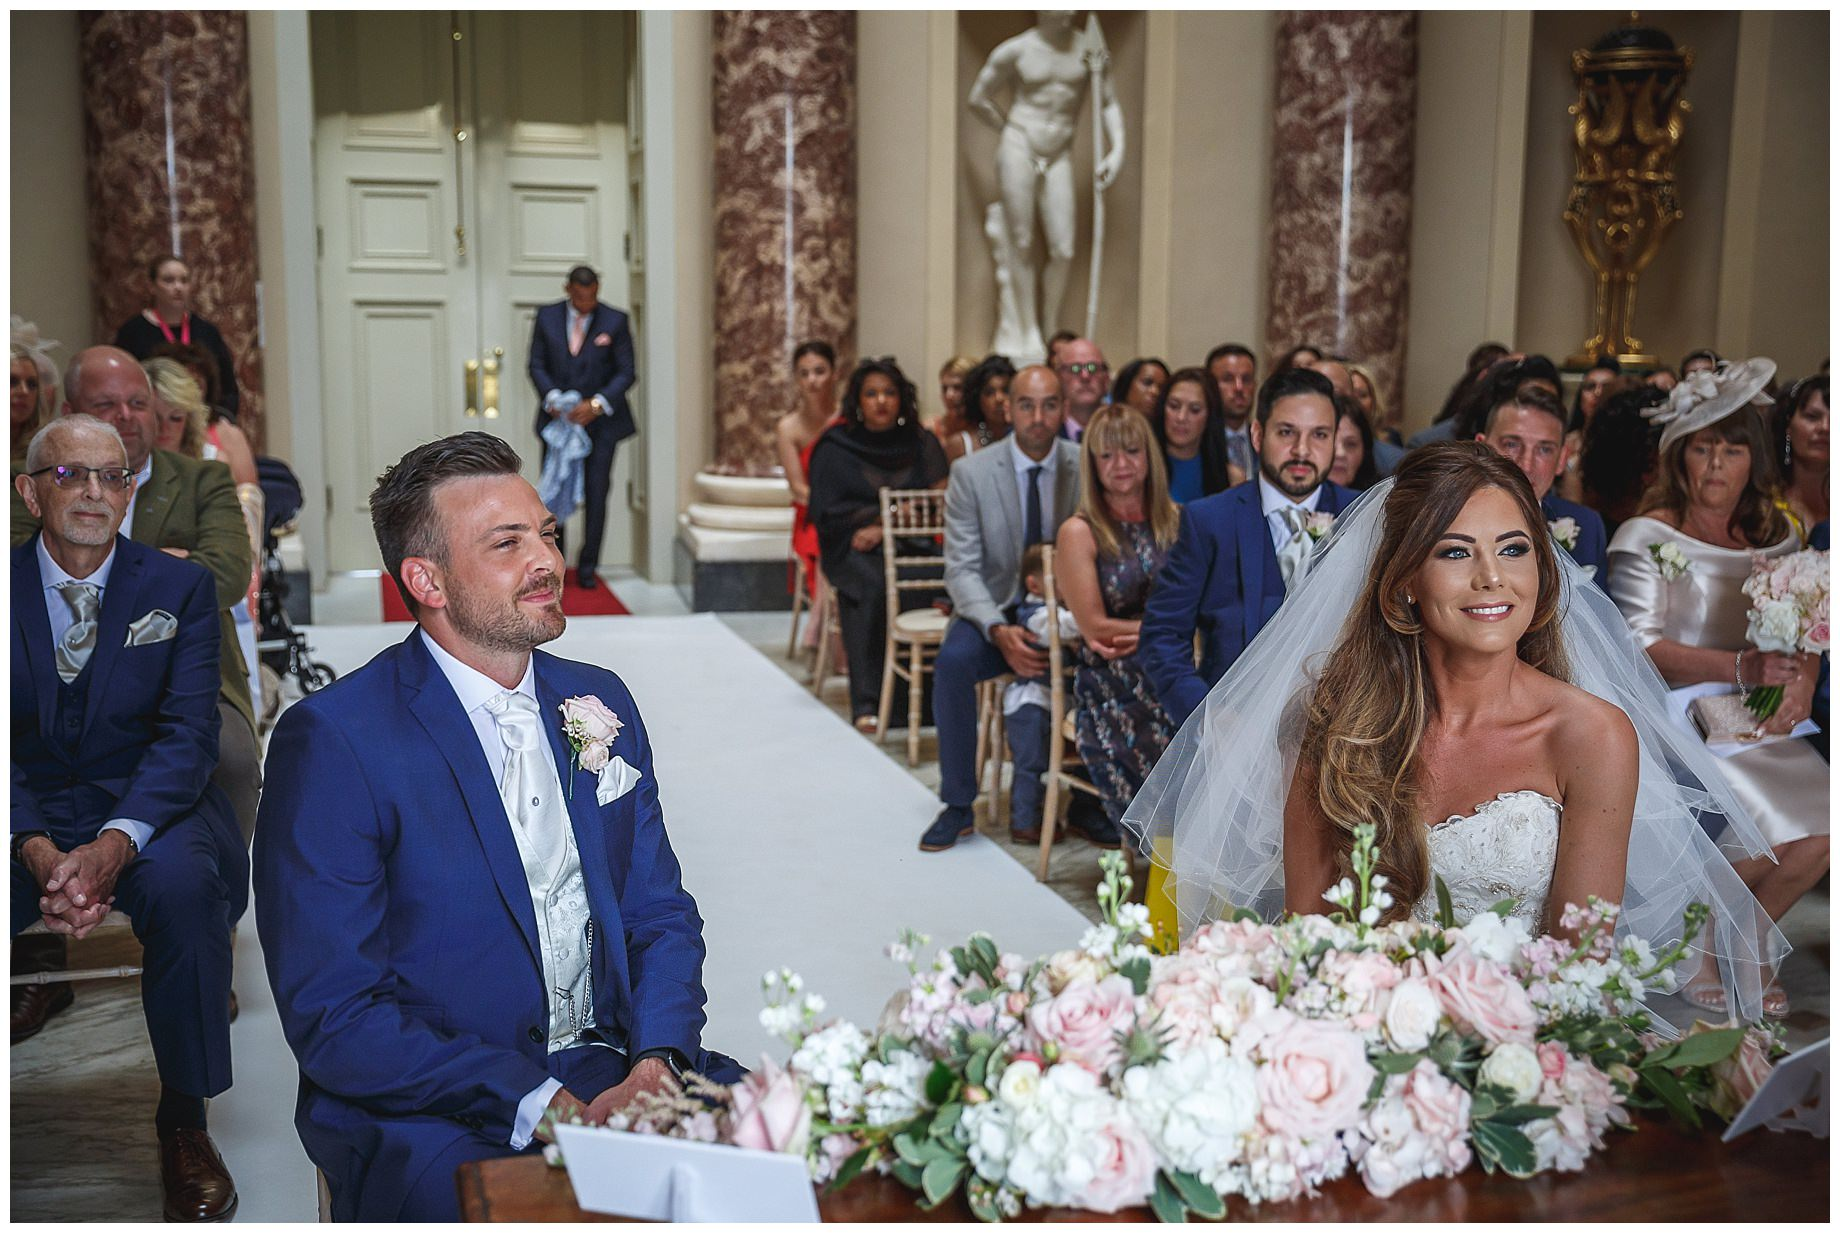 The couple begin the wedding ceremony at Stowe House